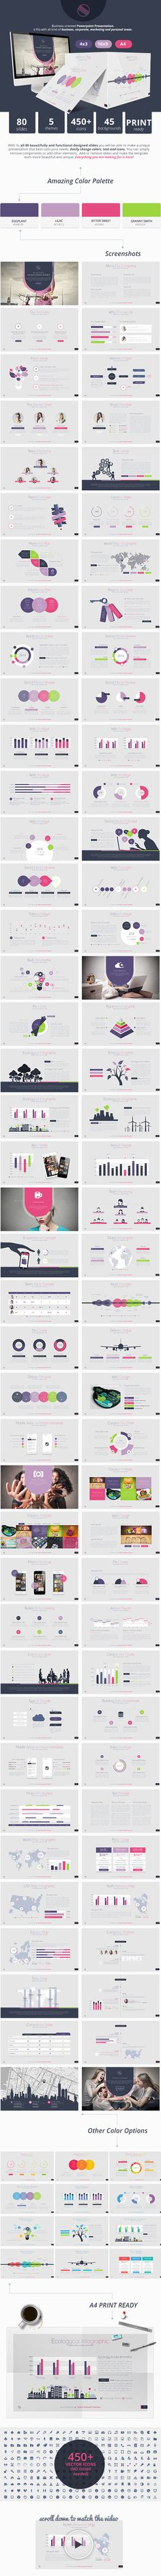 Ombre Powerpoint Presentation Template #powerpoint #powerpointtemplate…